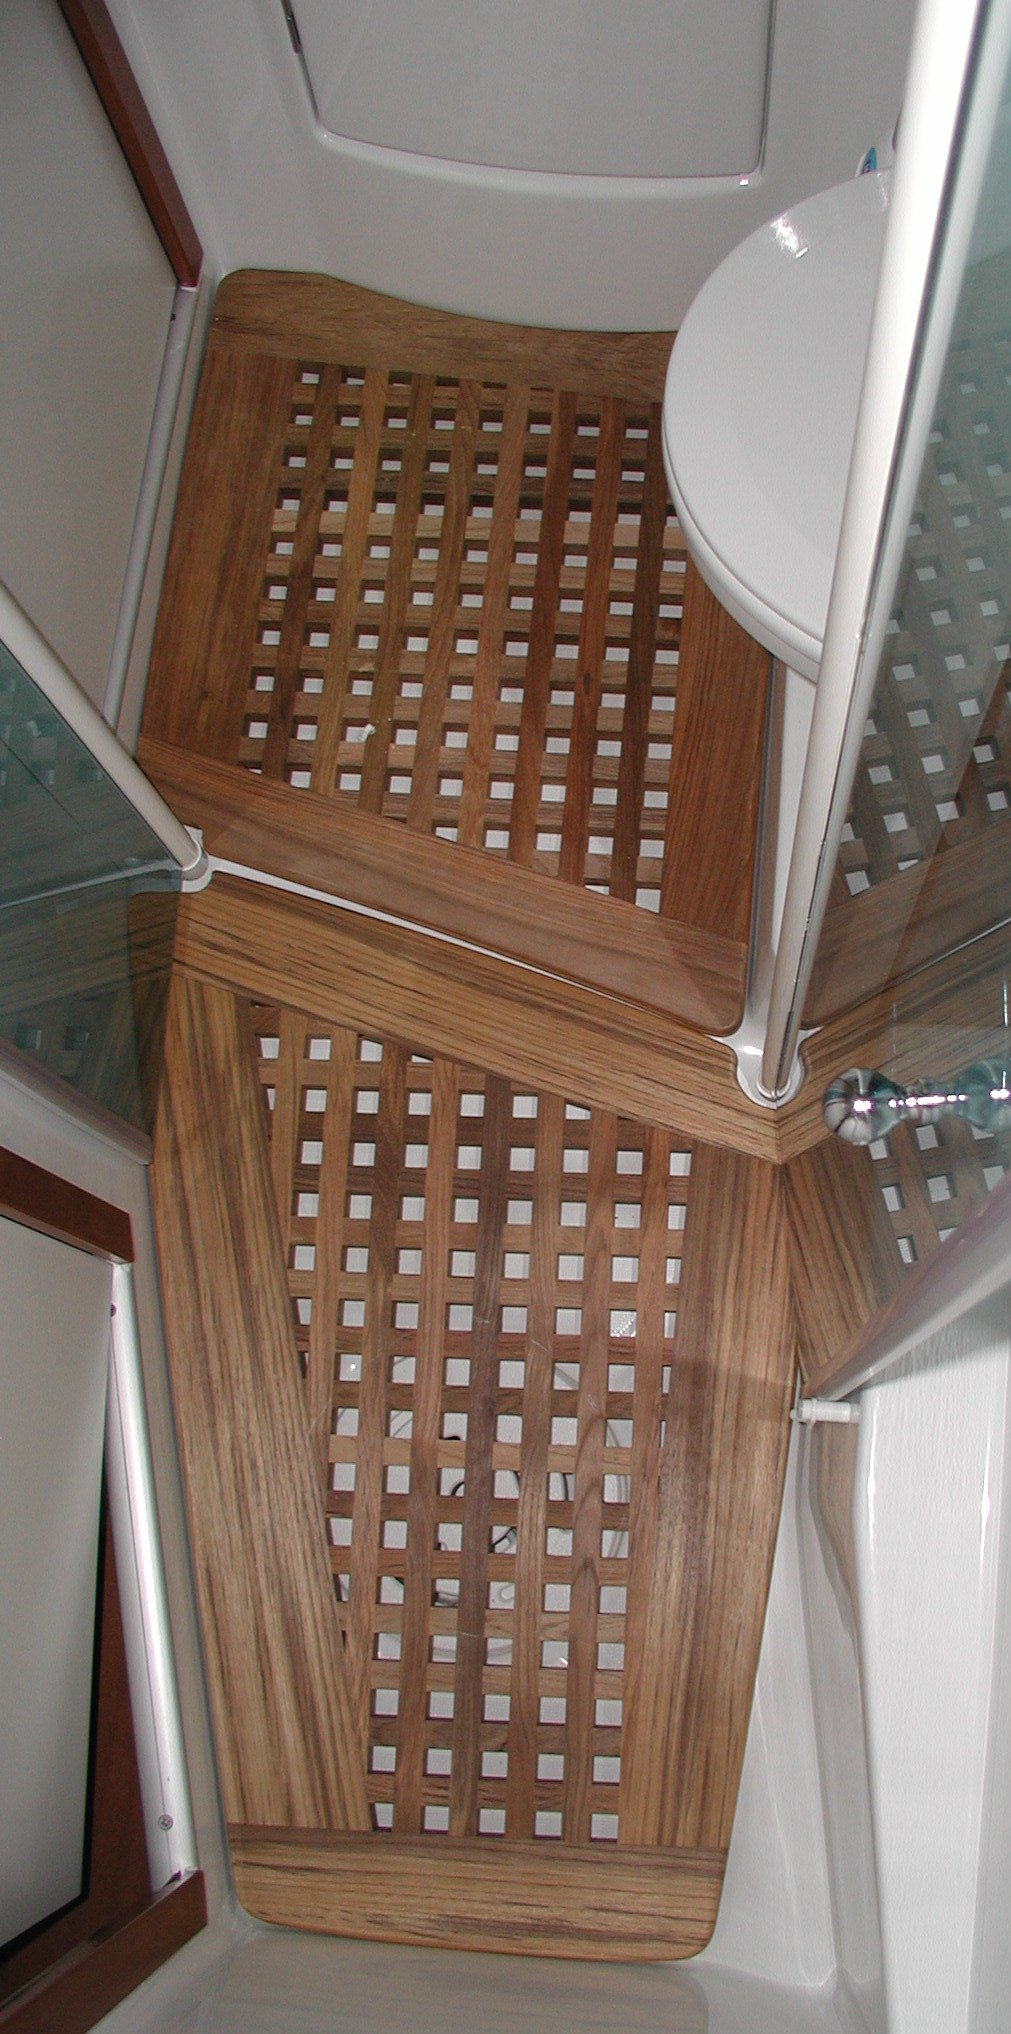 View on a grating for a head, Beneteau sailing yacht